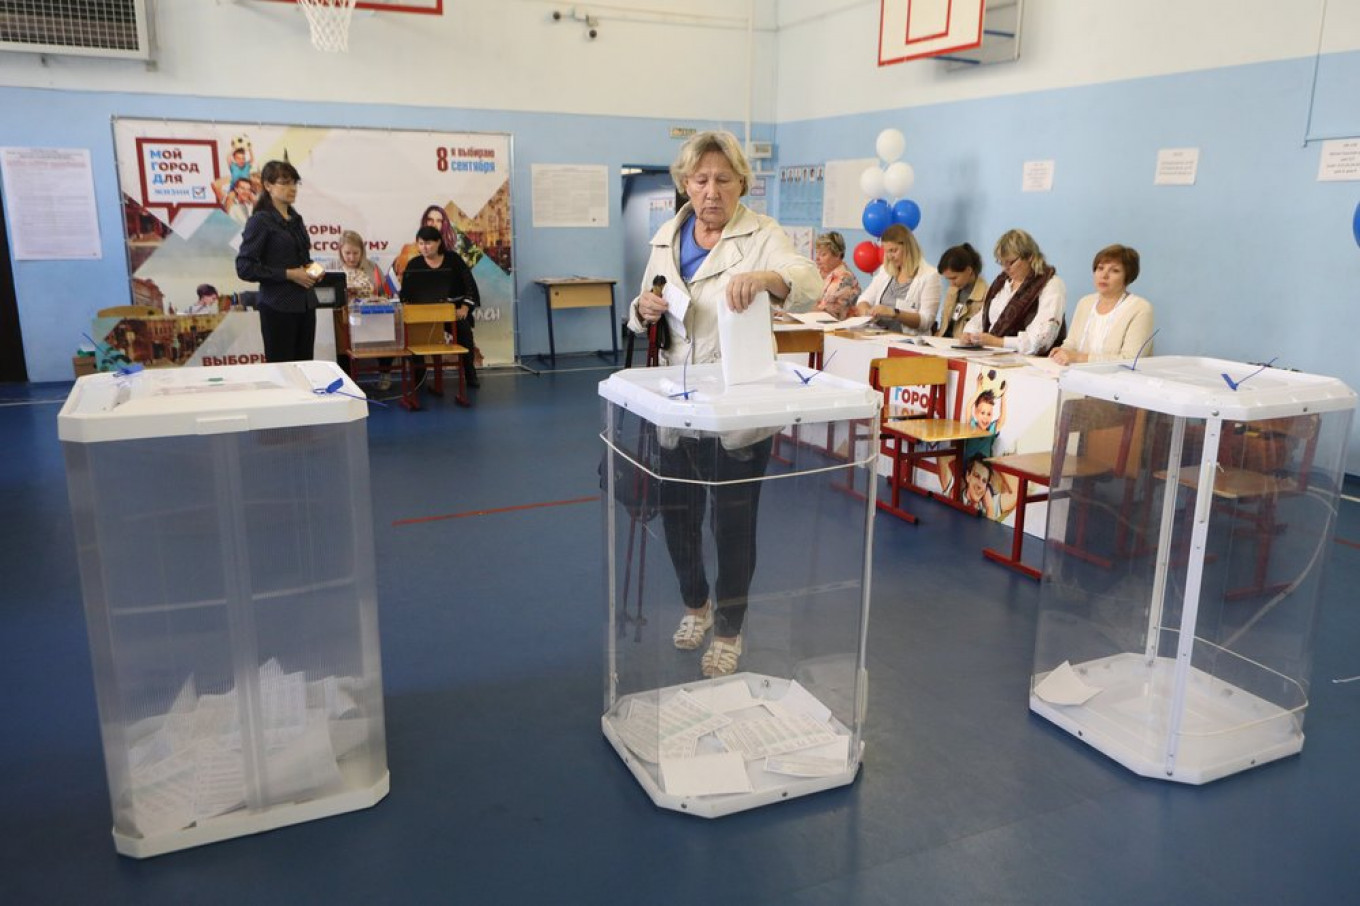 Russia's Ruling Party Sees Voter Support Drop in Crimea 5 Years After Annexation